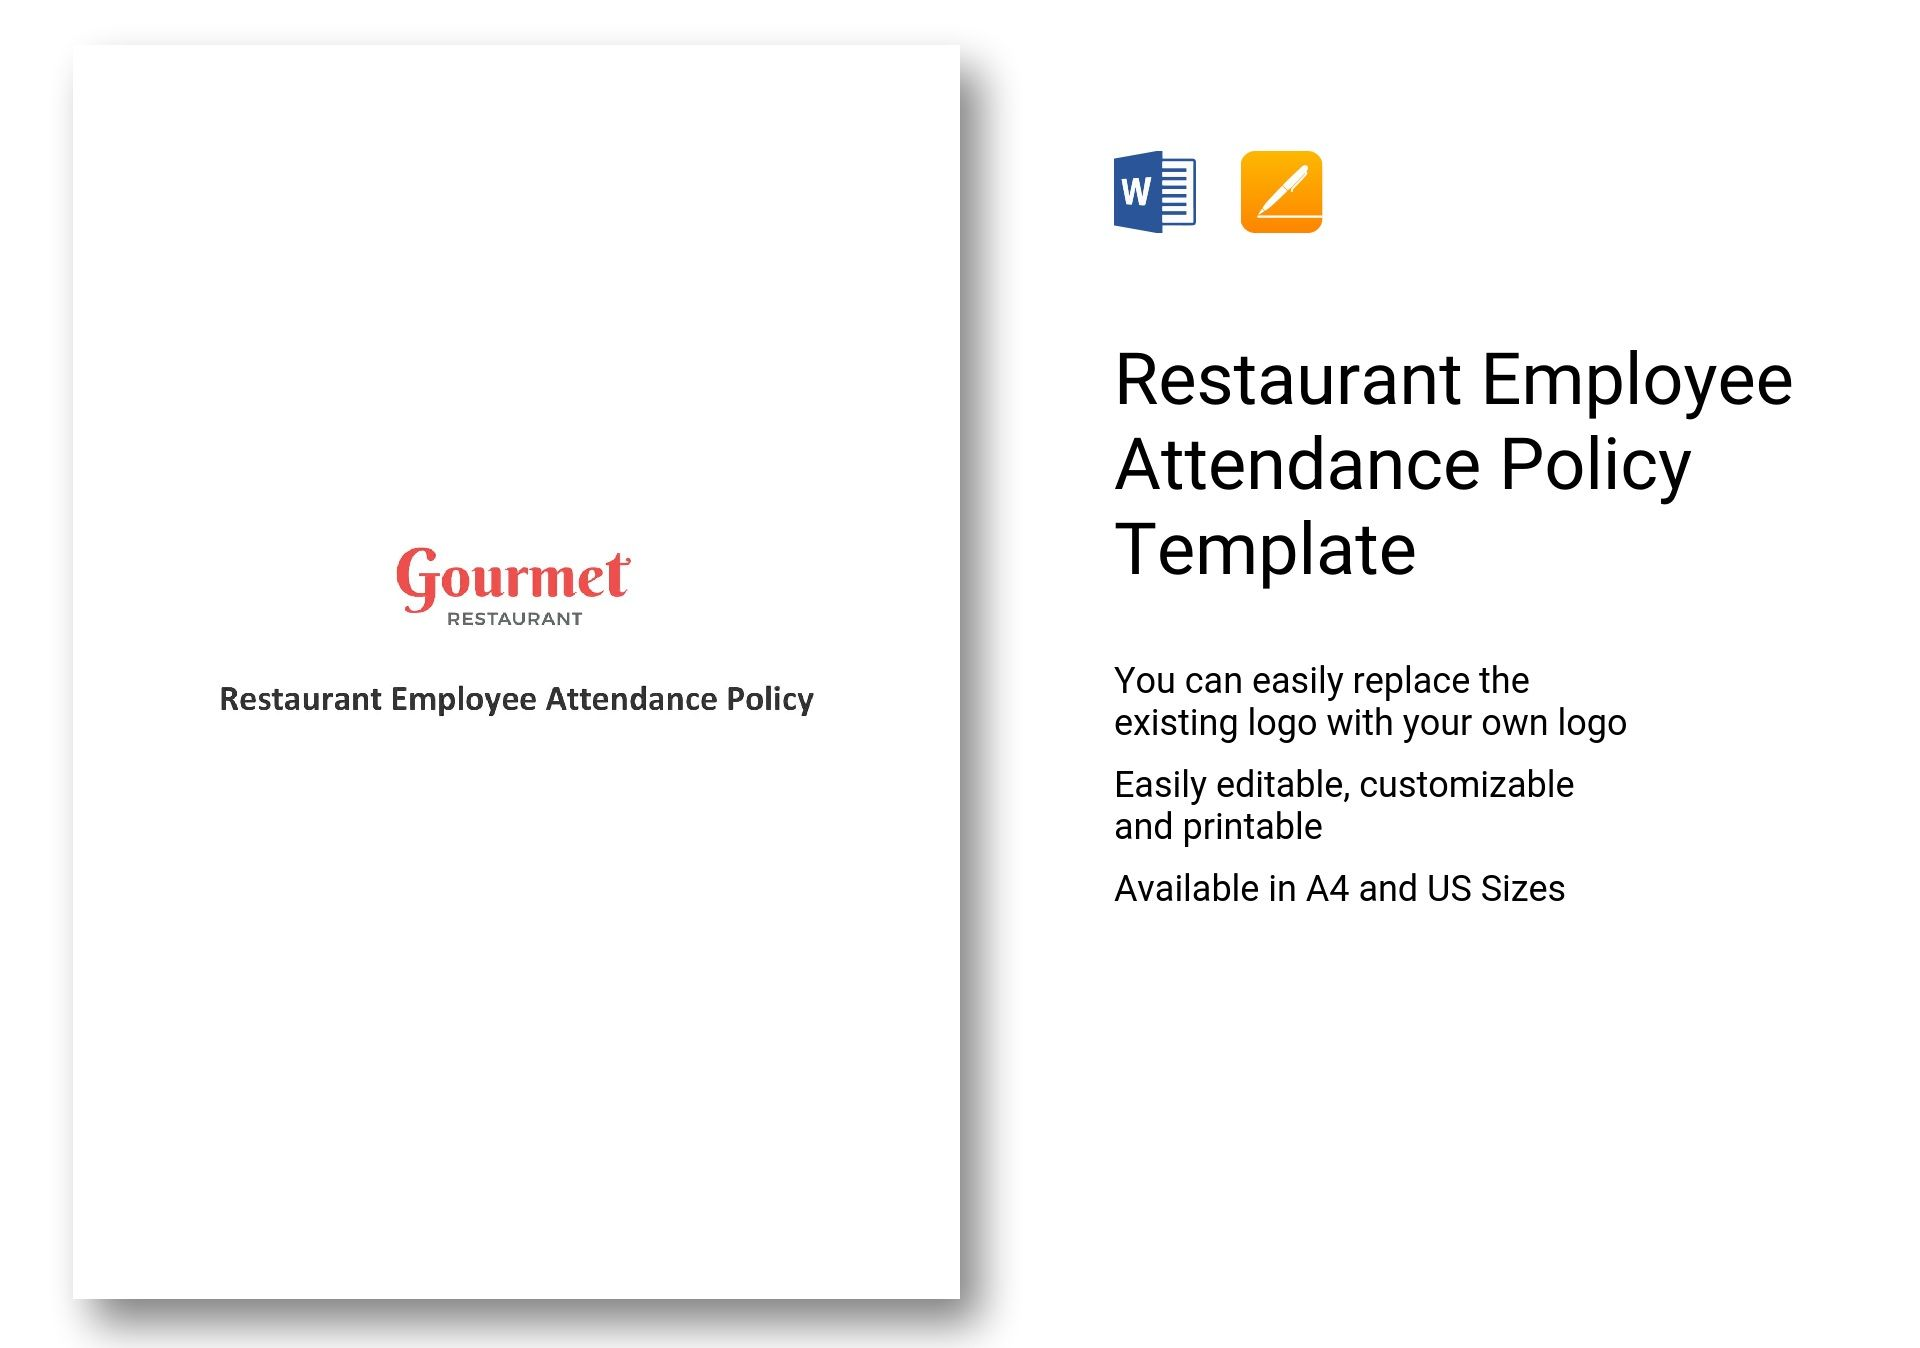 Restaurant Employee Attendance Policy Template In Word